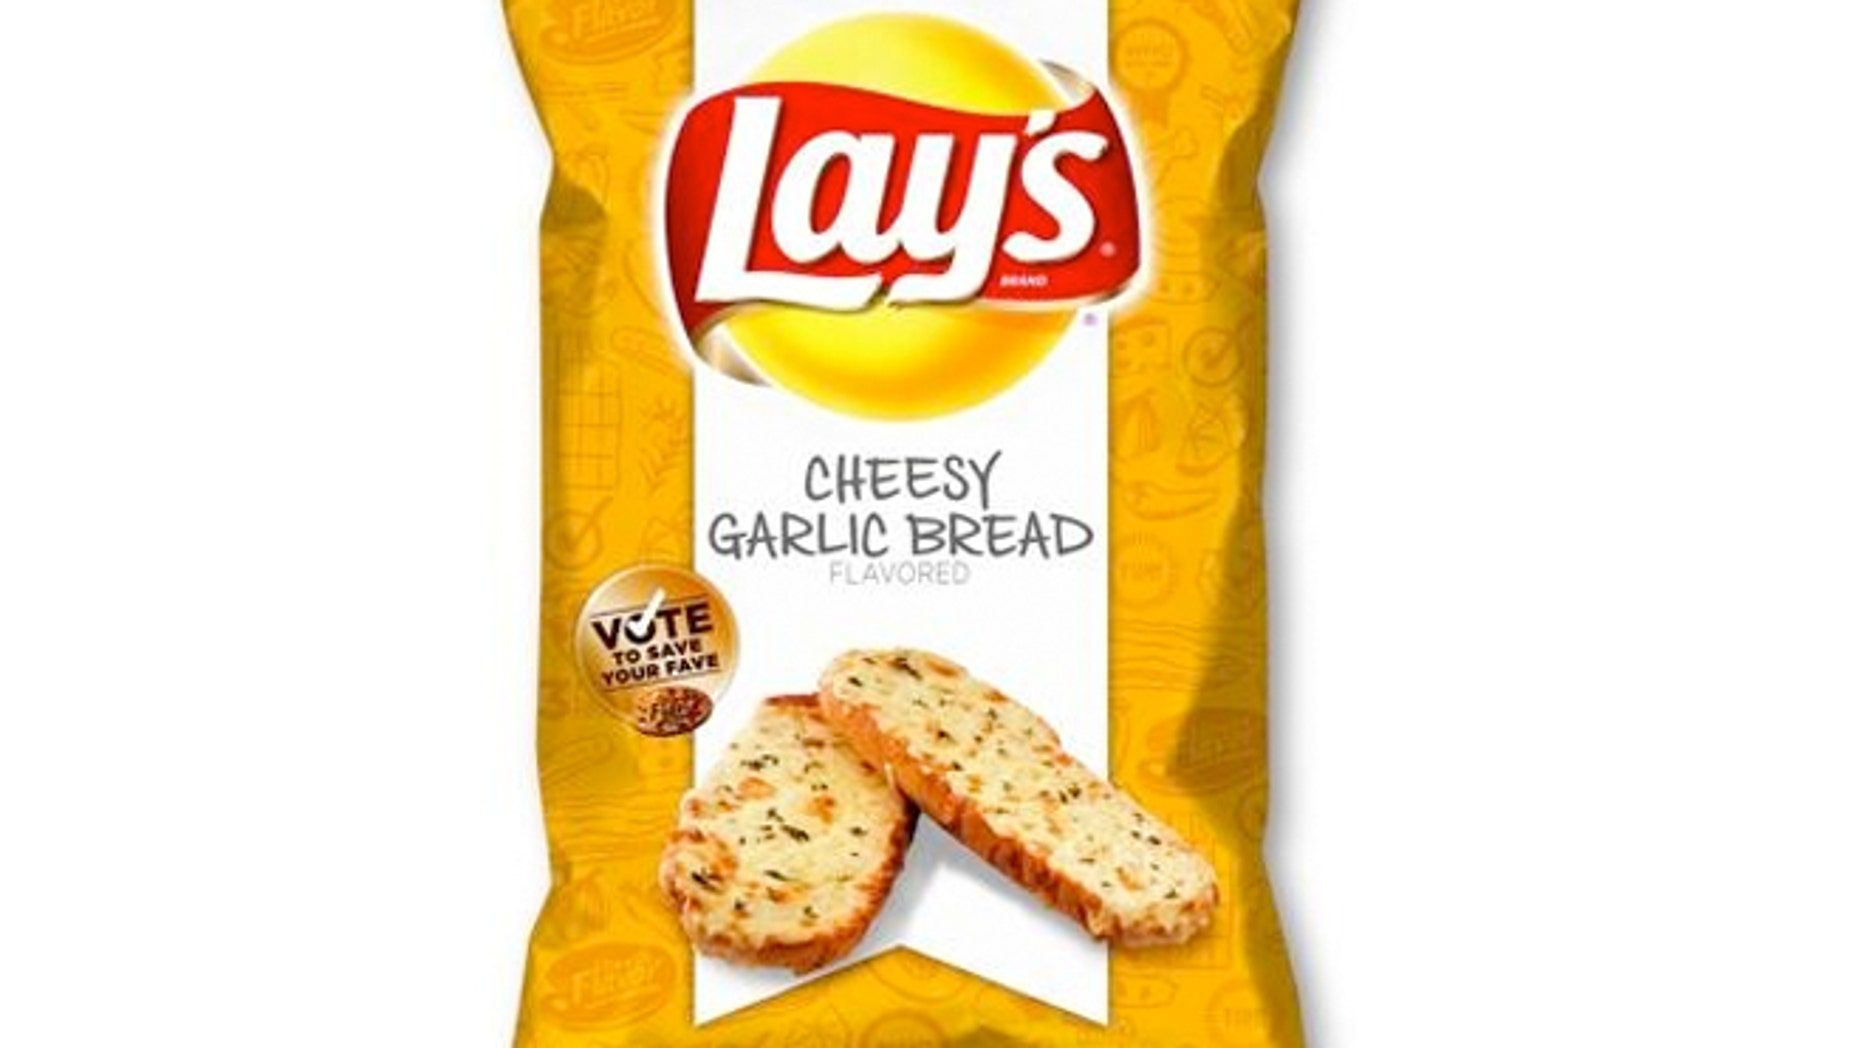 """Cheesy Garlic Bread beat out  Chicken & Waffles and Sriracha as winner of  Lay's """"Do Us A Flavor"""" contest."""